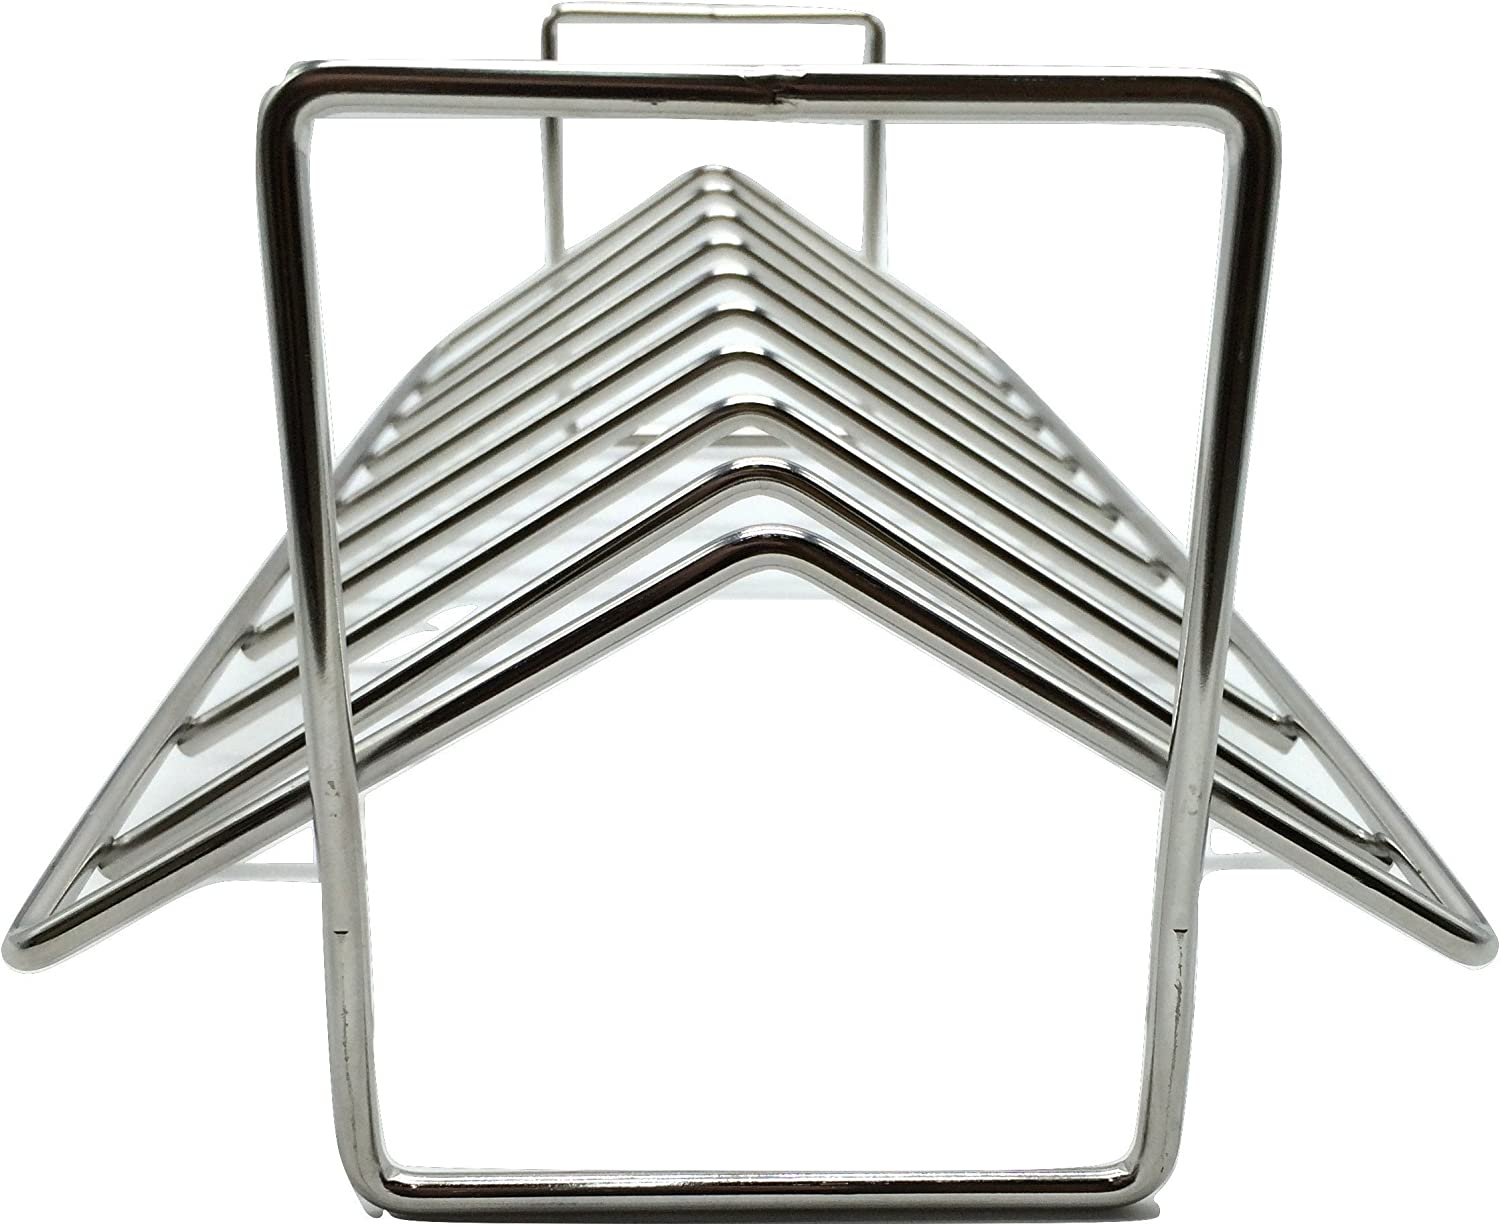 Aura Outdoor Products AOP-SVRP Stainless Steel Rib and Roasting Rack. for use with Big Green Egg, Kamado Joe, Vision, Grill Dome, Primo, and All Indoor ovens : Garden & Outdoor